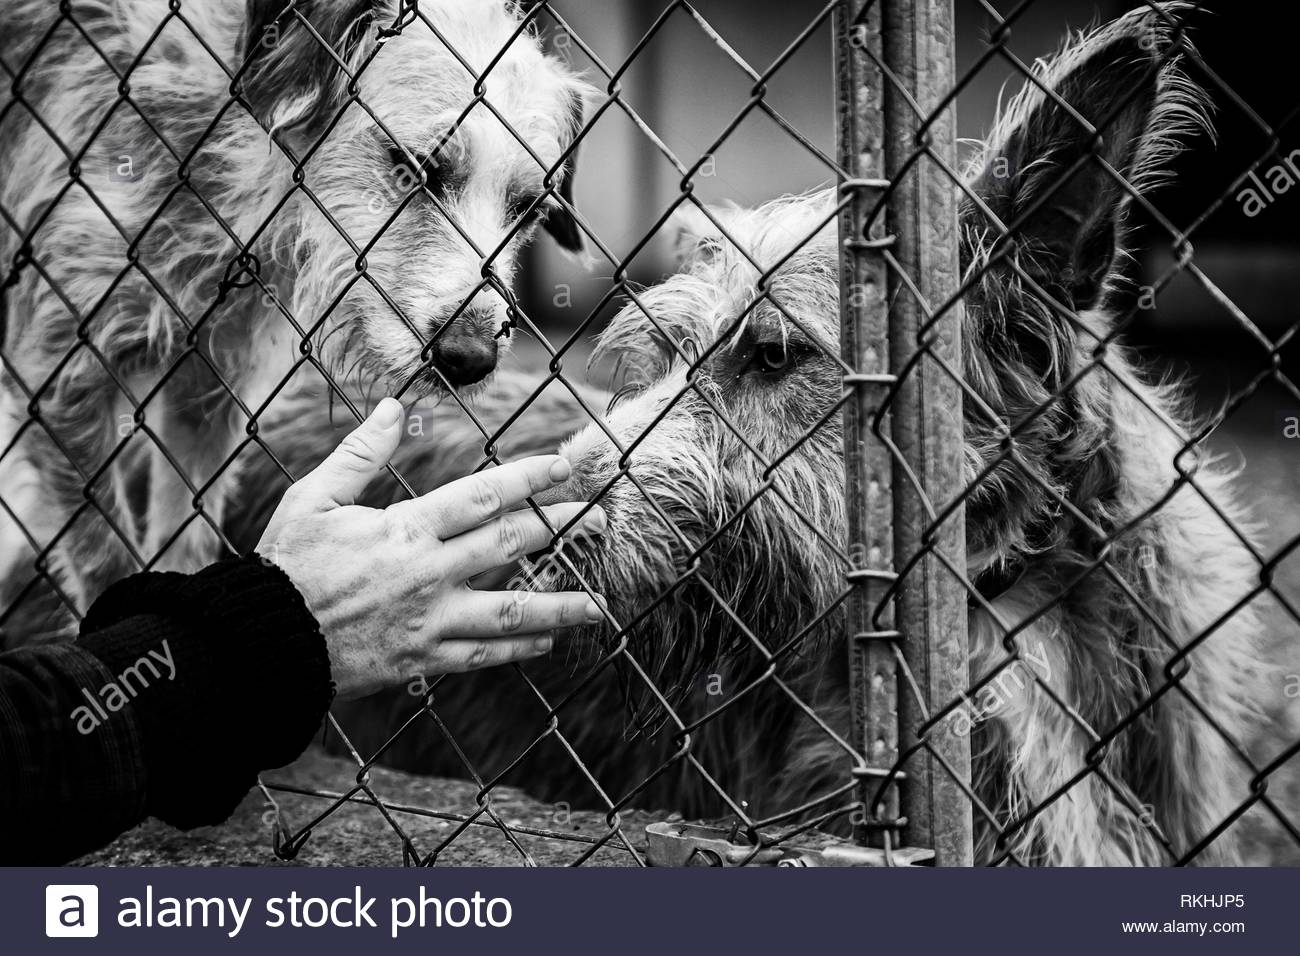 Woman petting stray dogs, kennel for stray animals. - Stock Image